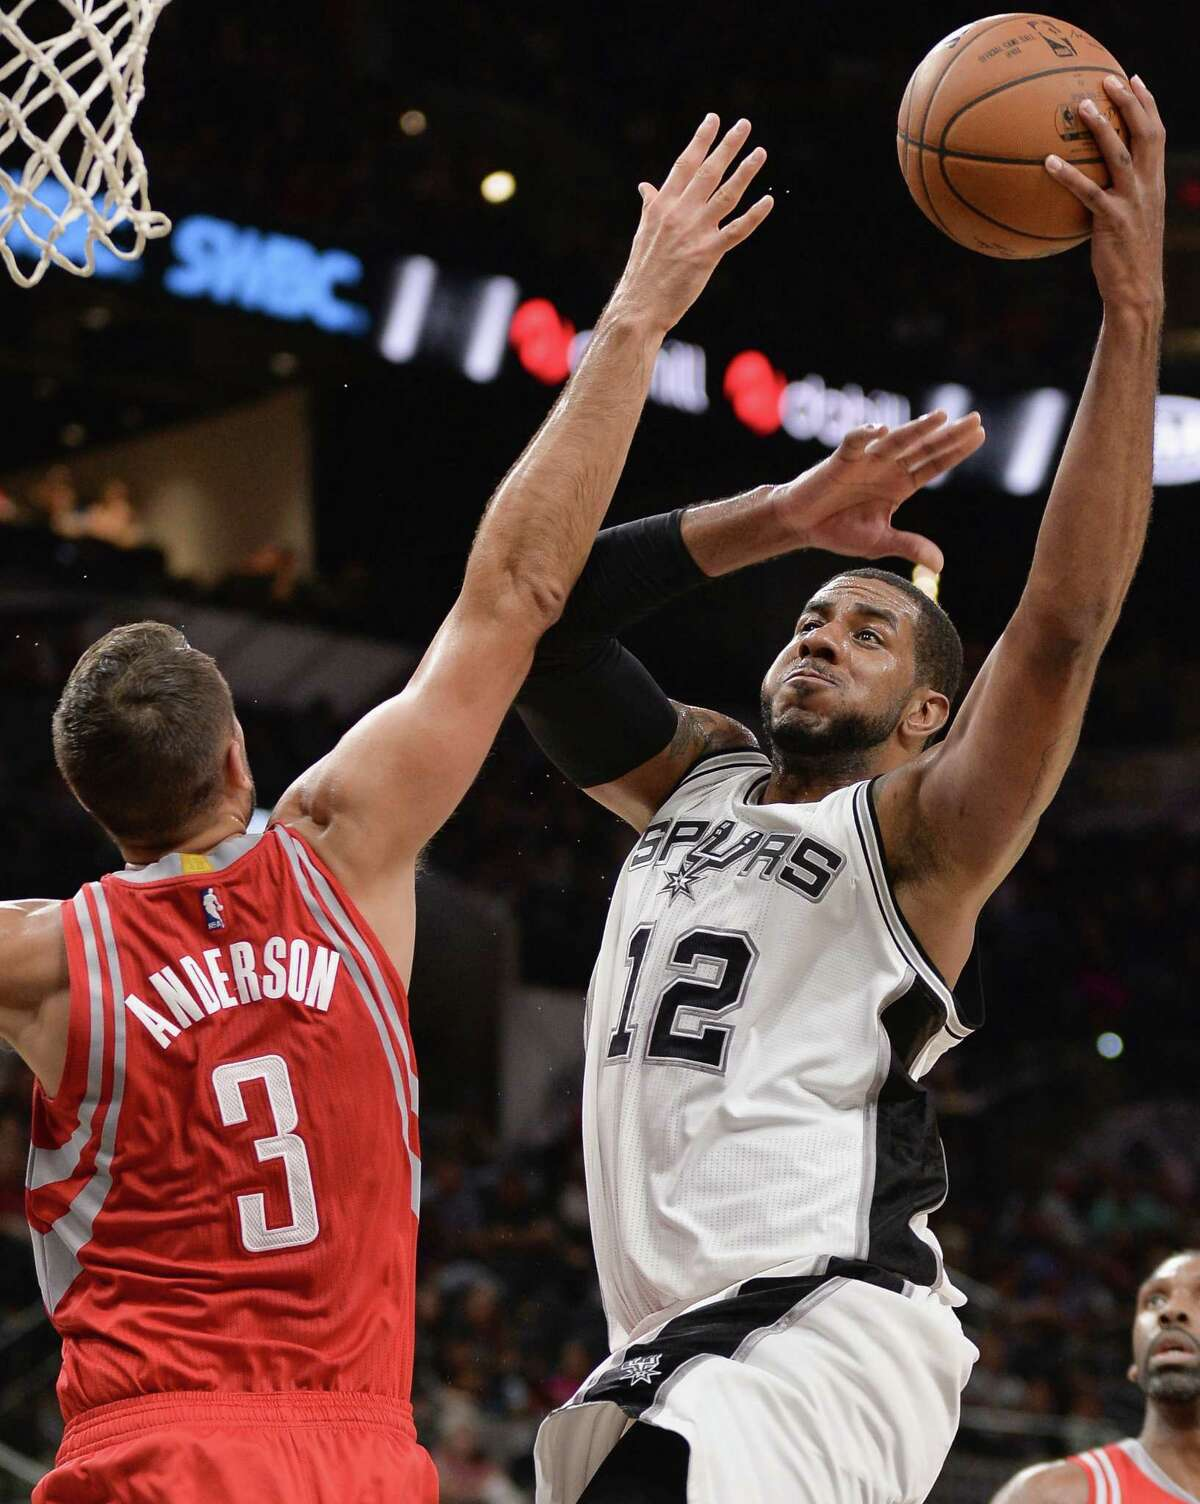 San Antonio Spurs forward LaMarcus Aldridge (12) shoots against Houston Rockets forward Ryan Anderson during the second half of a preseason NBA basketball game, Friday, Oct. 21, 2016, in San Antonio. (AP Photo/Darren Abate)